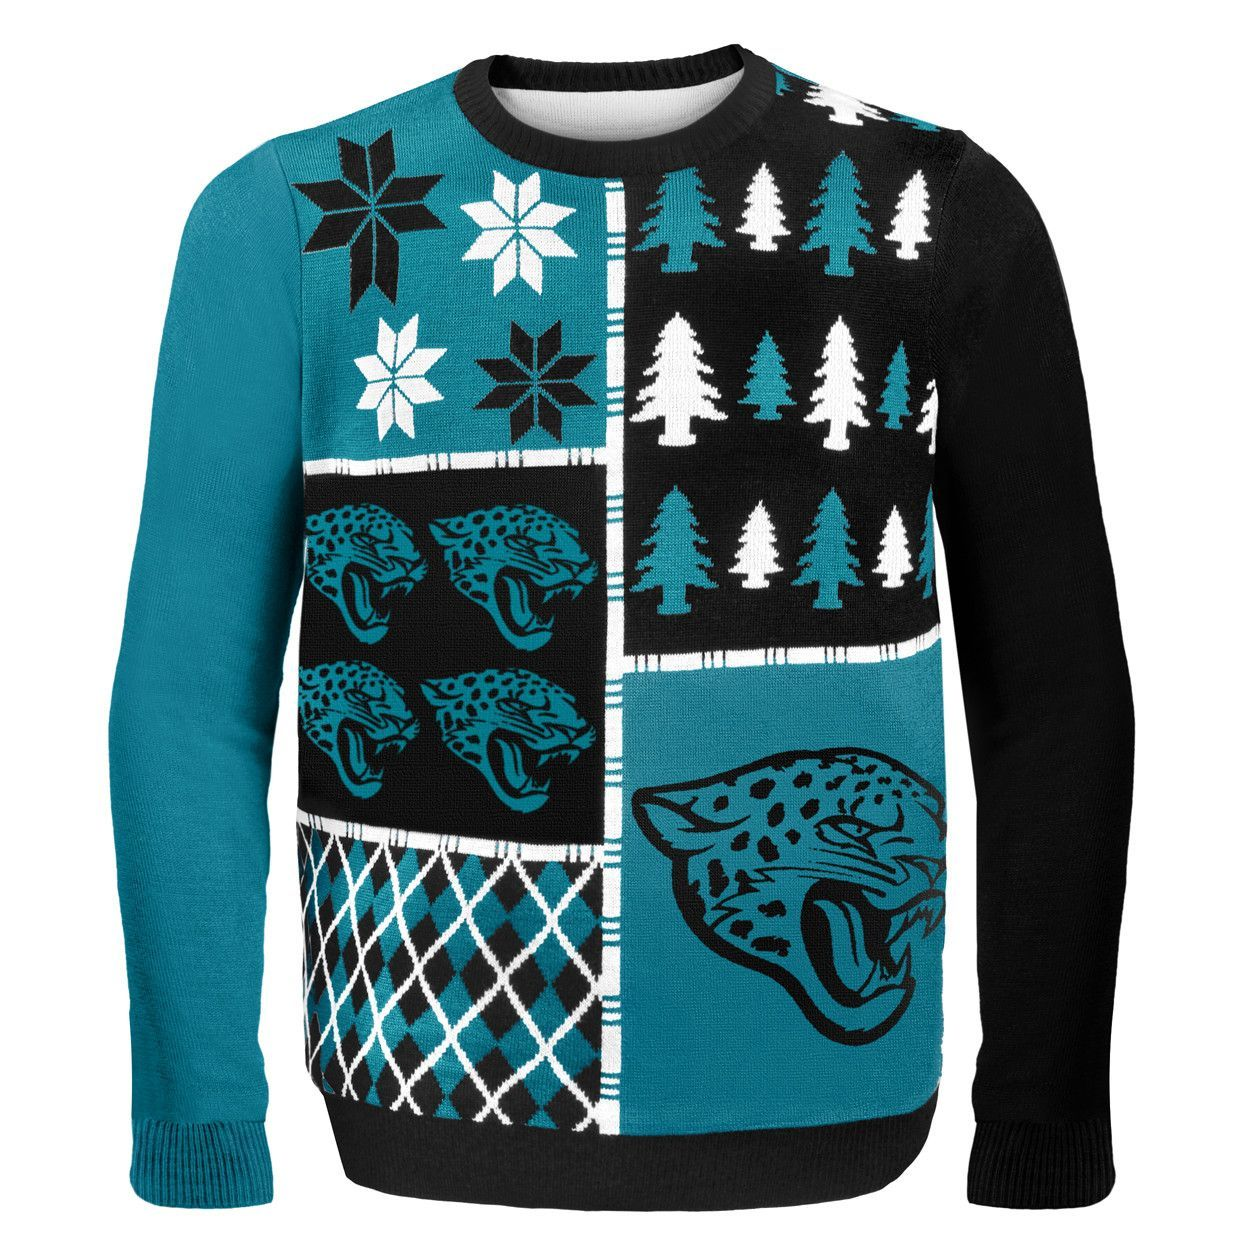 Jacksonville Jaguars Busy Block NFL Ugly Sweater   Products   Pinterest